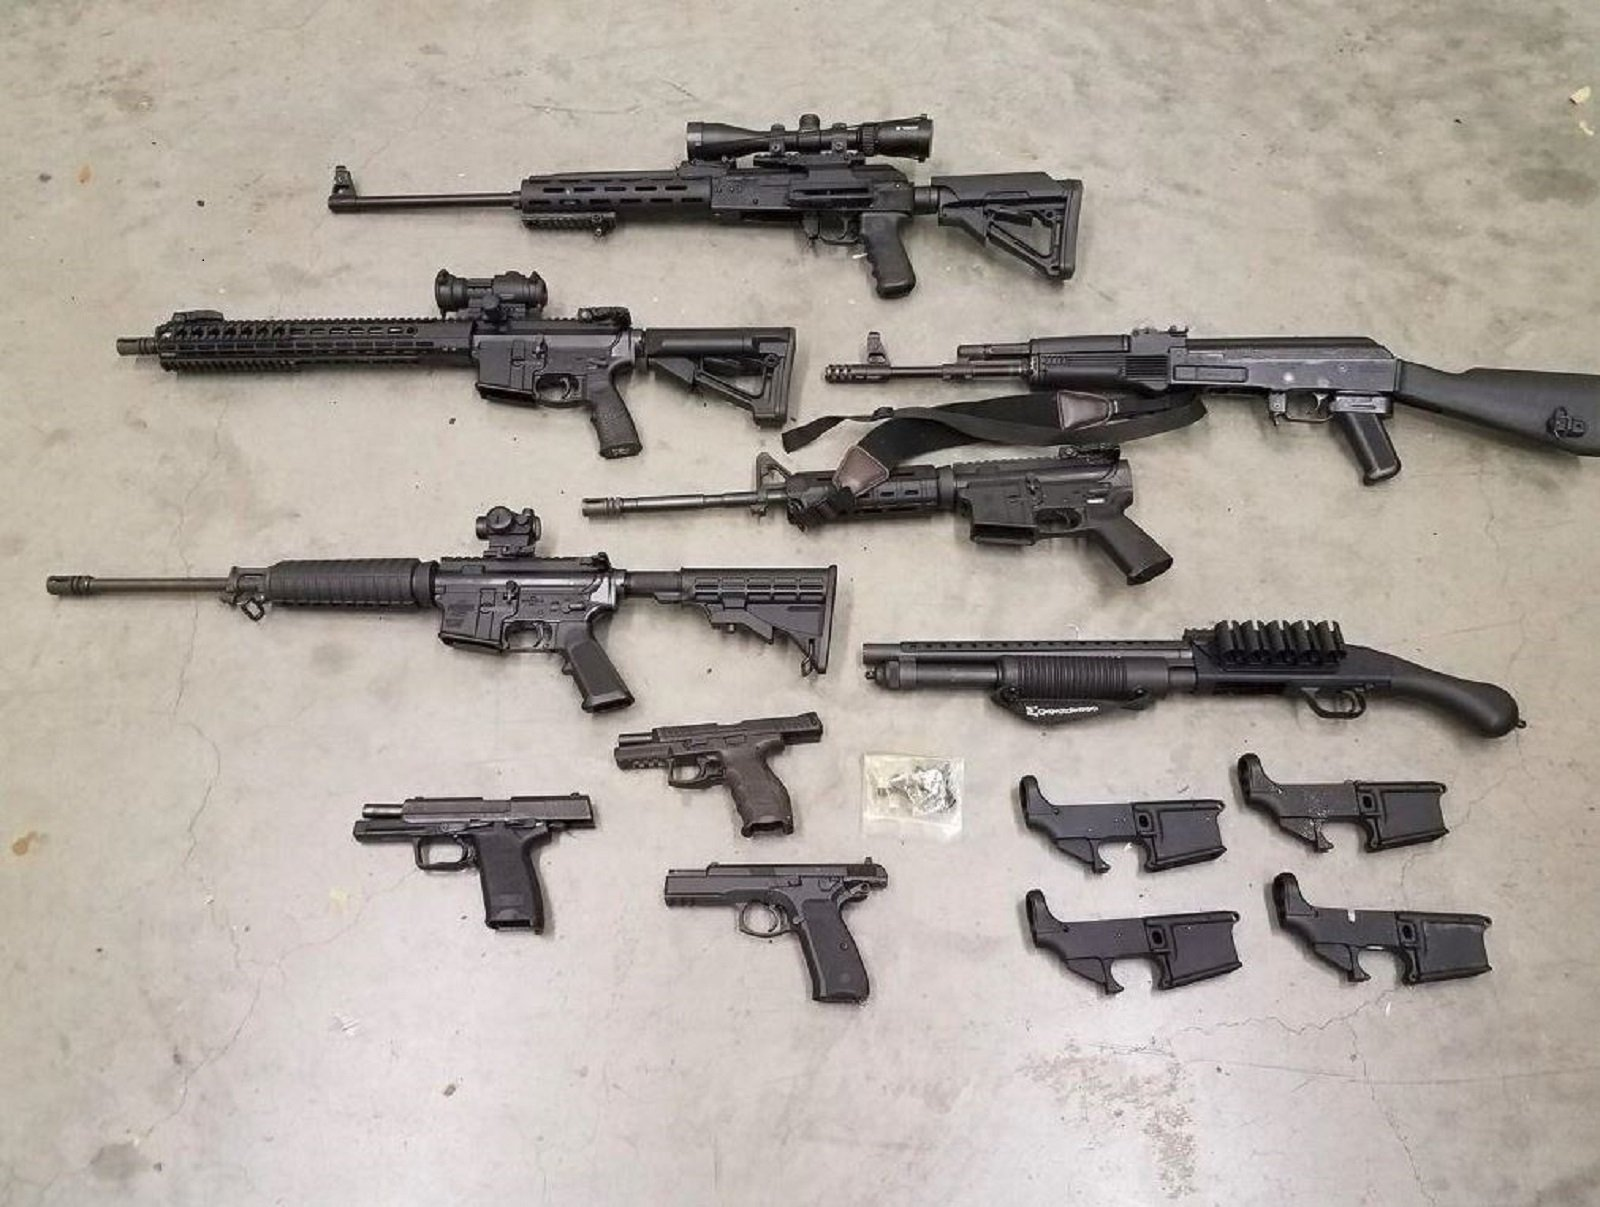 Weapons seized from alleged neo-Nazi leader in Washington state